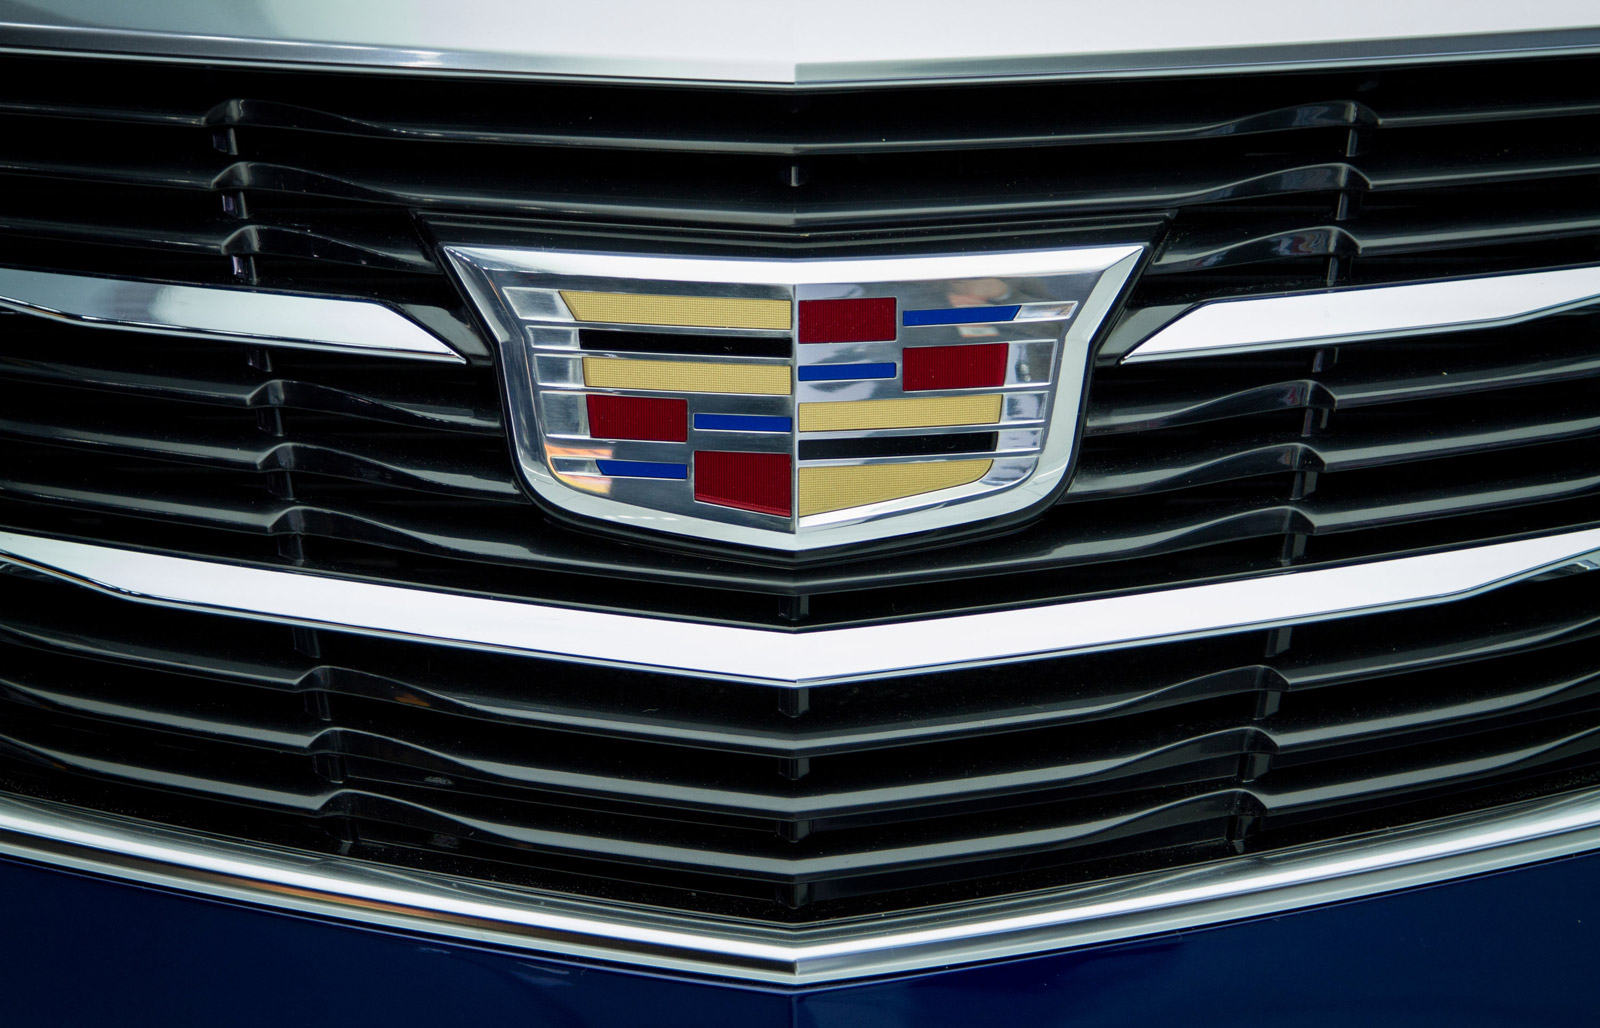 Jeep Dealership Los Angeles >> Cadillac Explains Why It Dropped The Laurel Wreaths From Its Logo